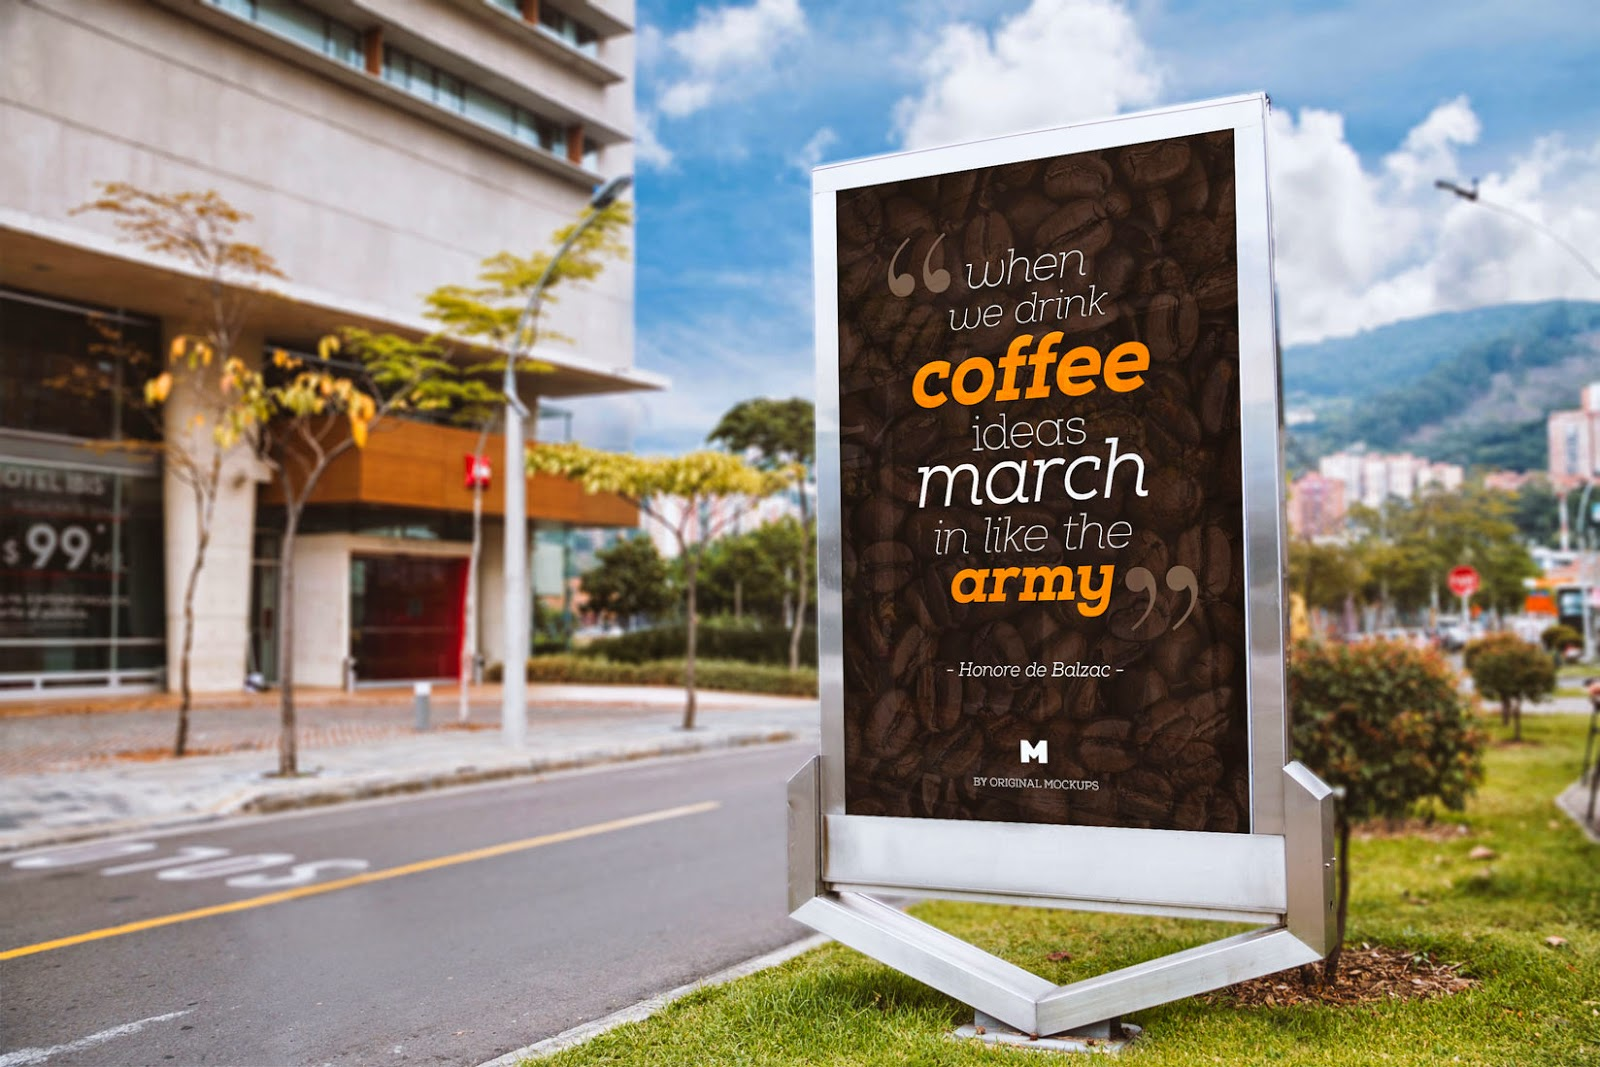 Billboard Outdoor Advertising Mockup PSD